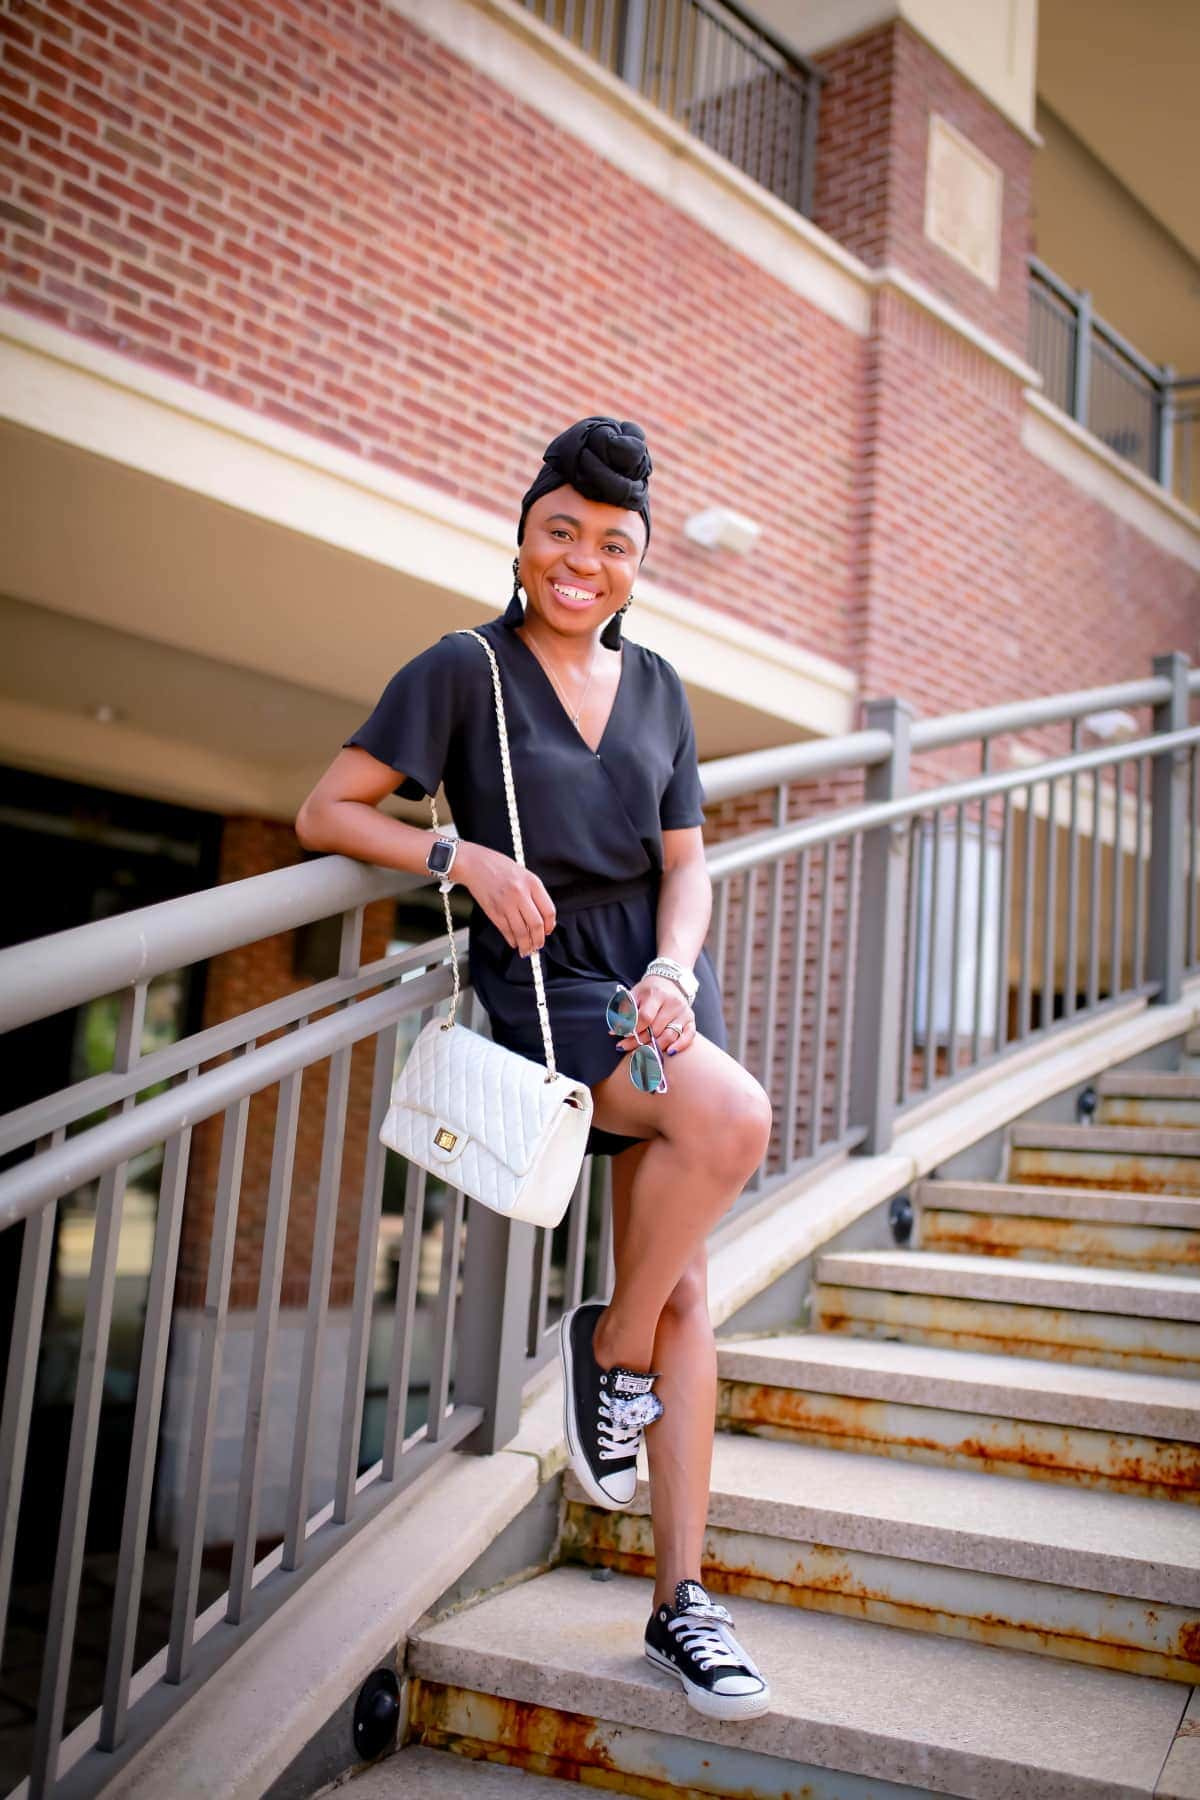 2 of 3 ways to style a black dressy romper. For a practical everyday look, style your romper with a pair of sneakers like she did here. A quilted structured bag for texture and a beautiful lightweight chandelier earrings and retro reflective sunnies for the get-work-done appeak. #everydaystyle #casualwomensfashion #blackoutfit